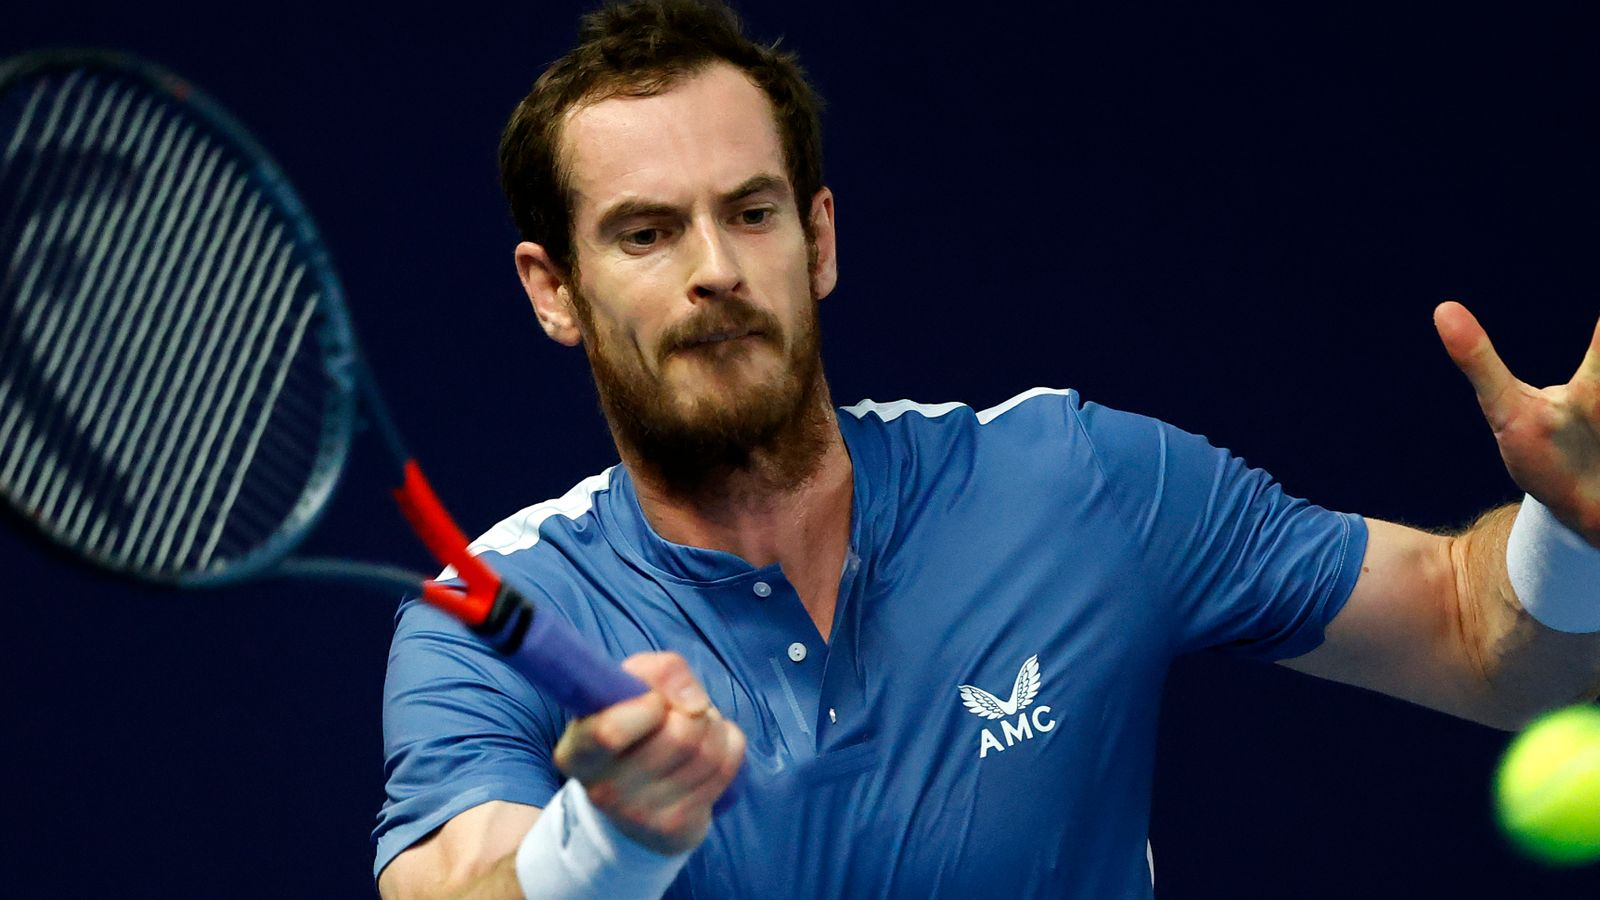 Andy Murray reaches semi-finals at Battle of the Brits